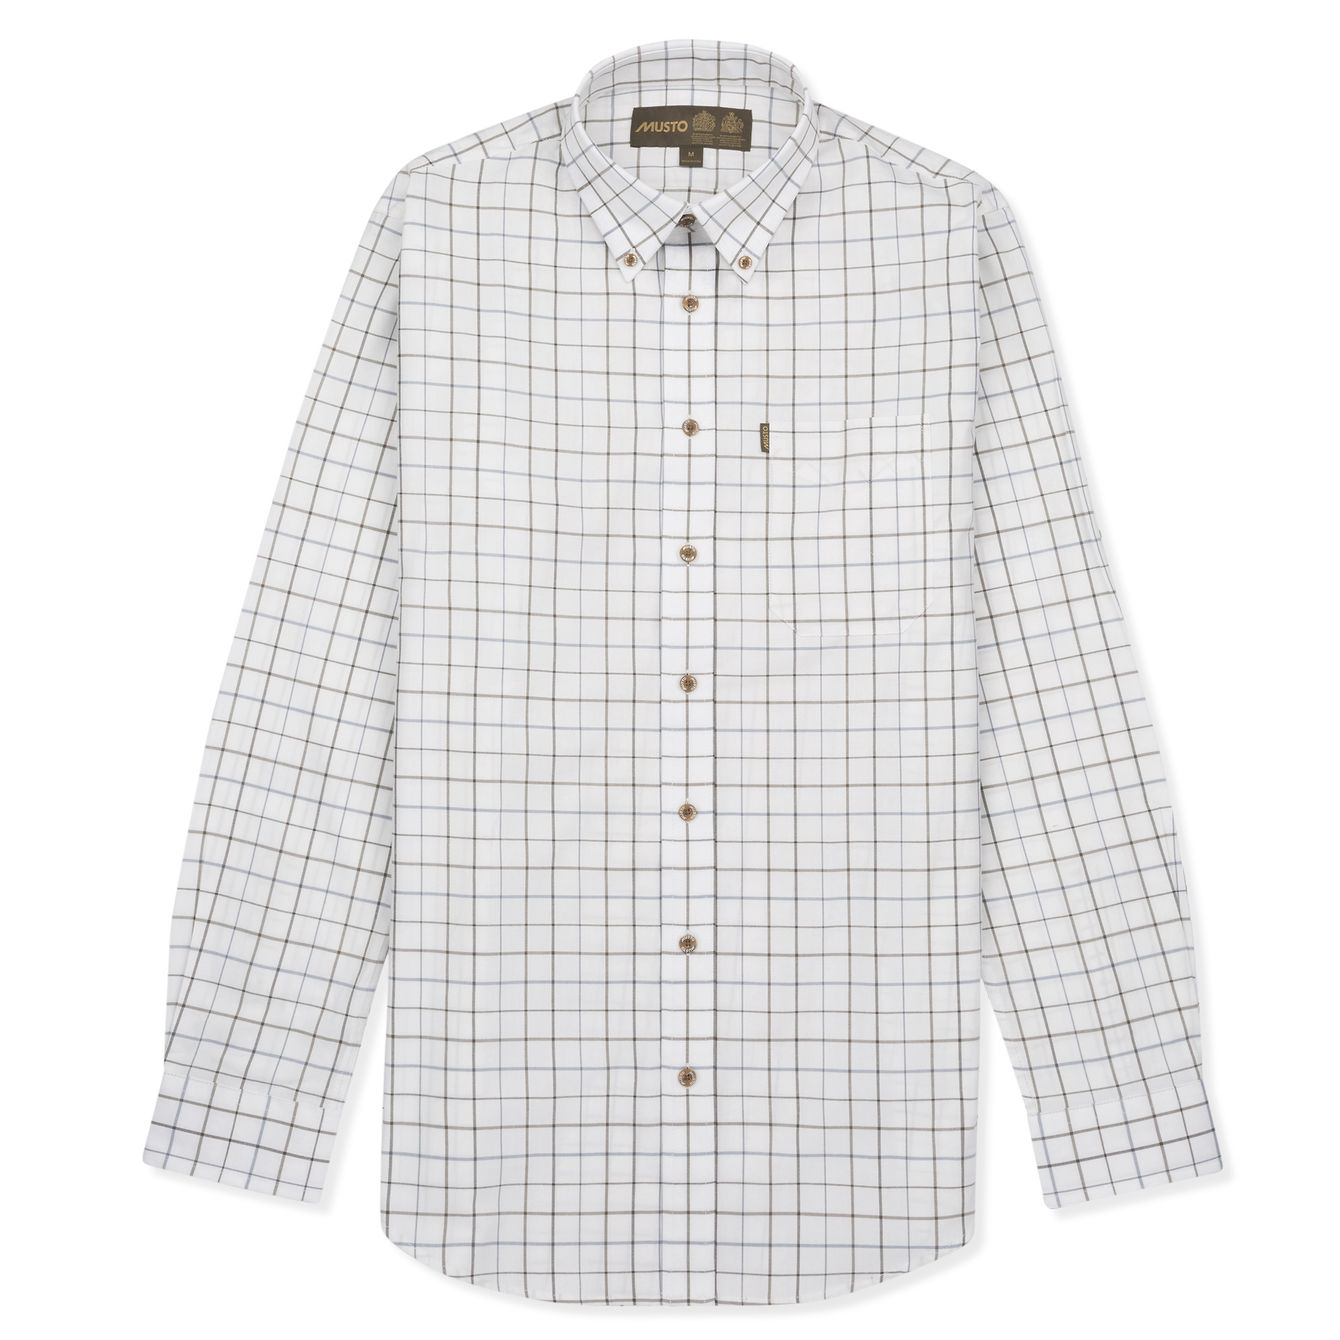 Musto Classic Button Down Shirt for Men in Farlan Moss